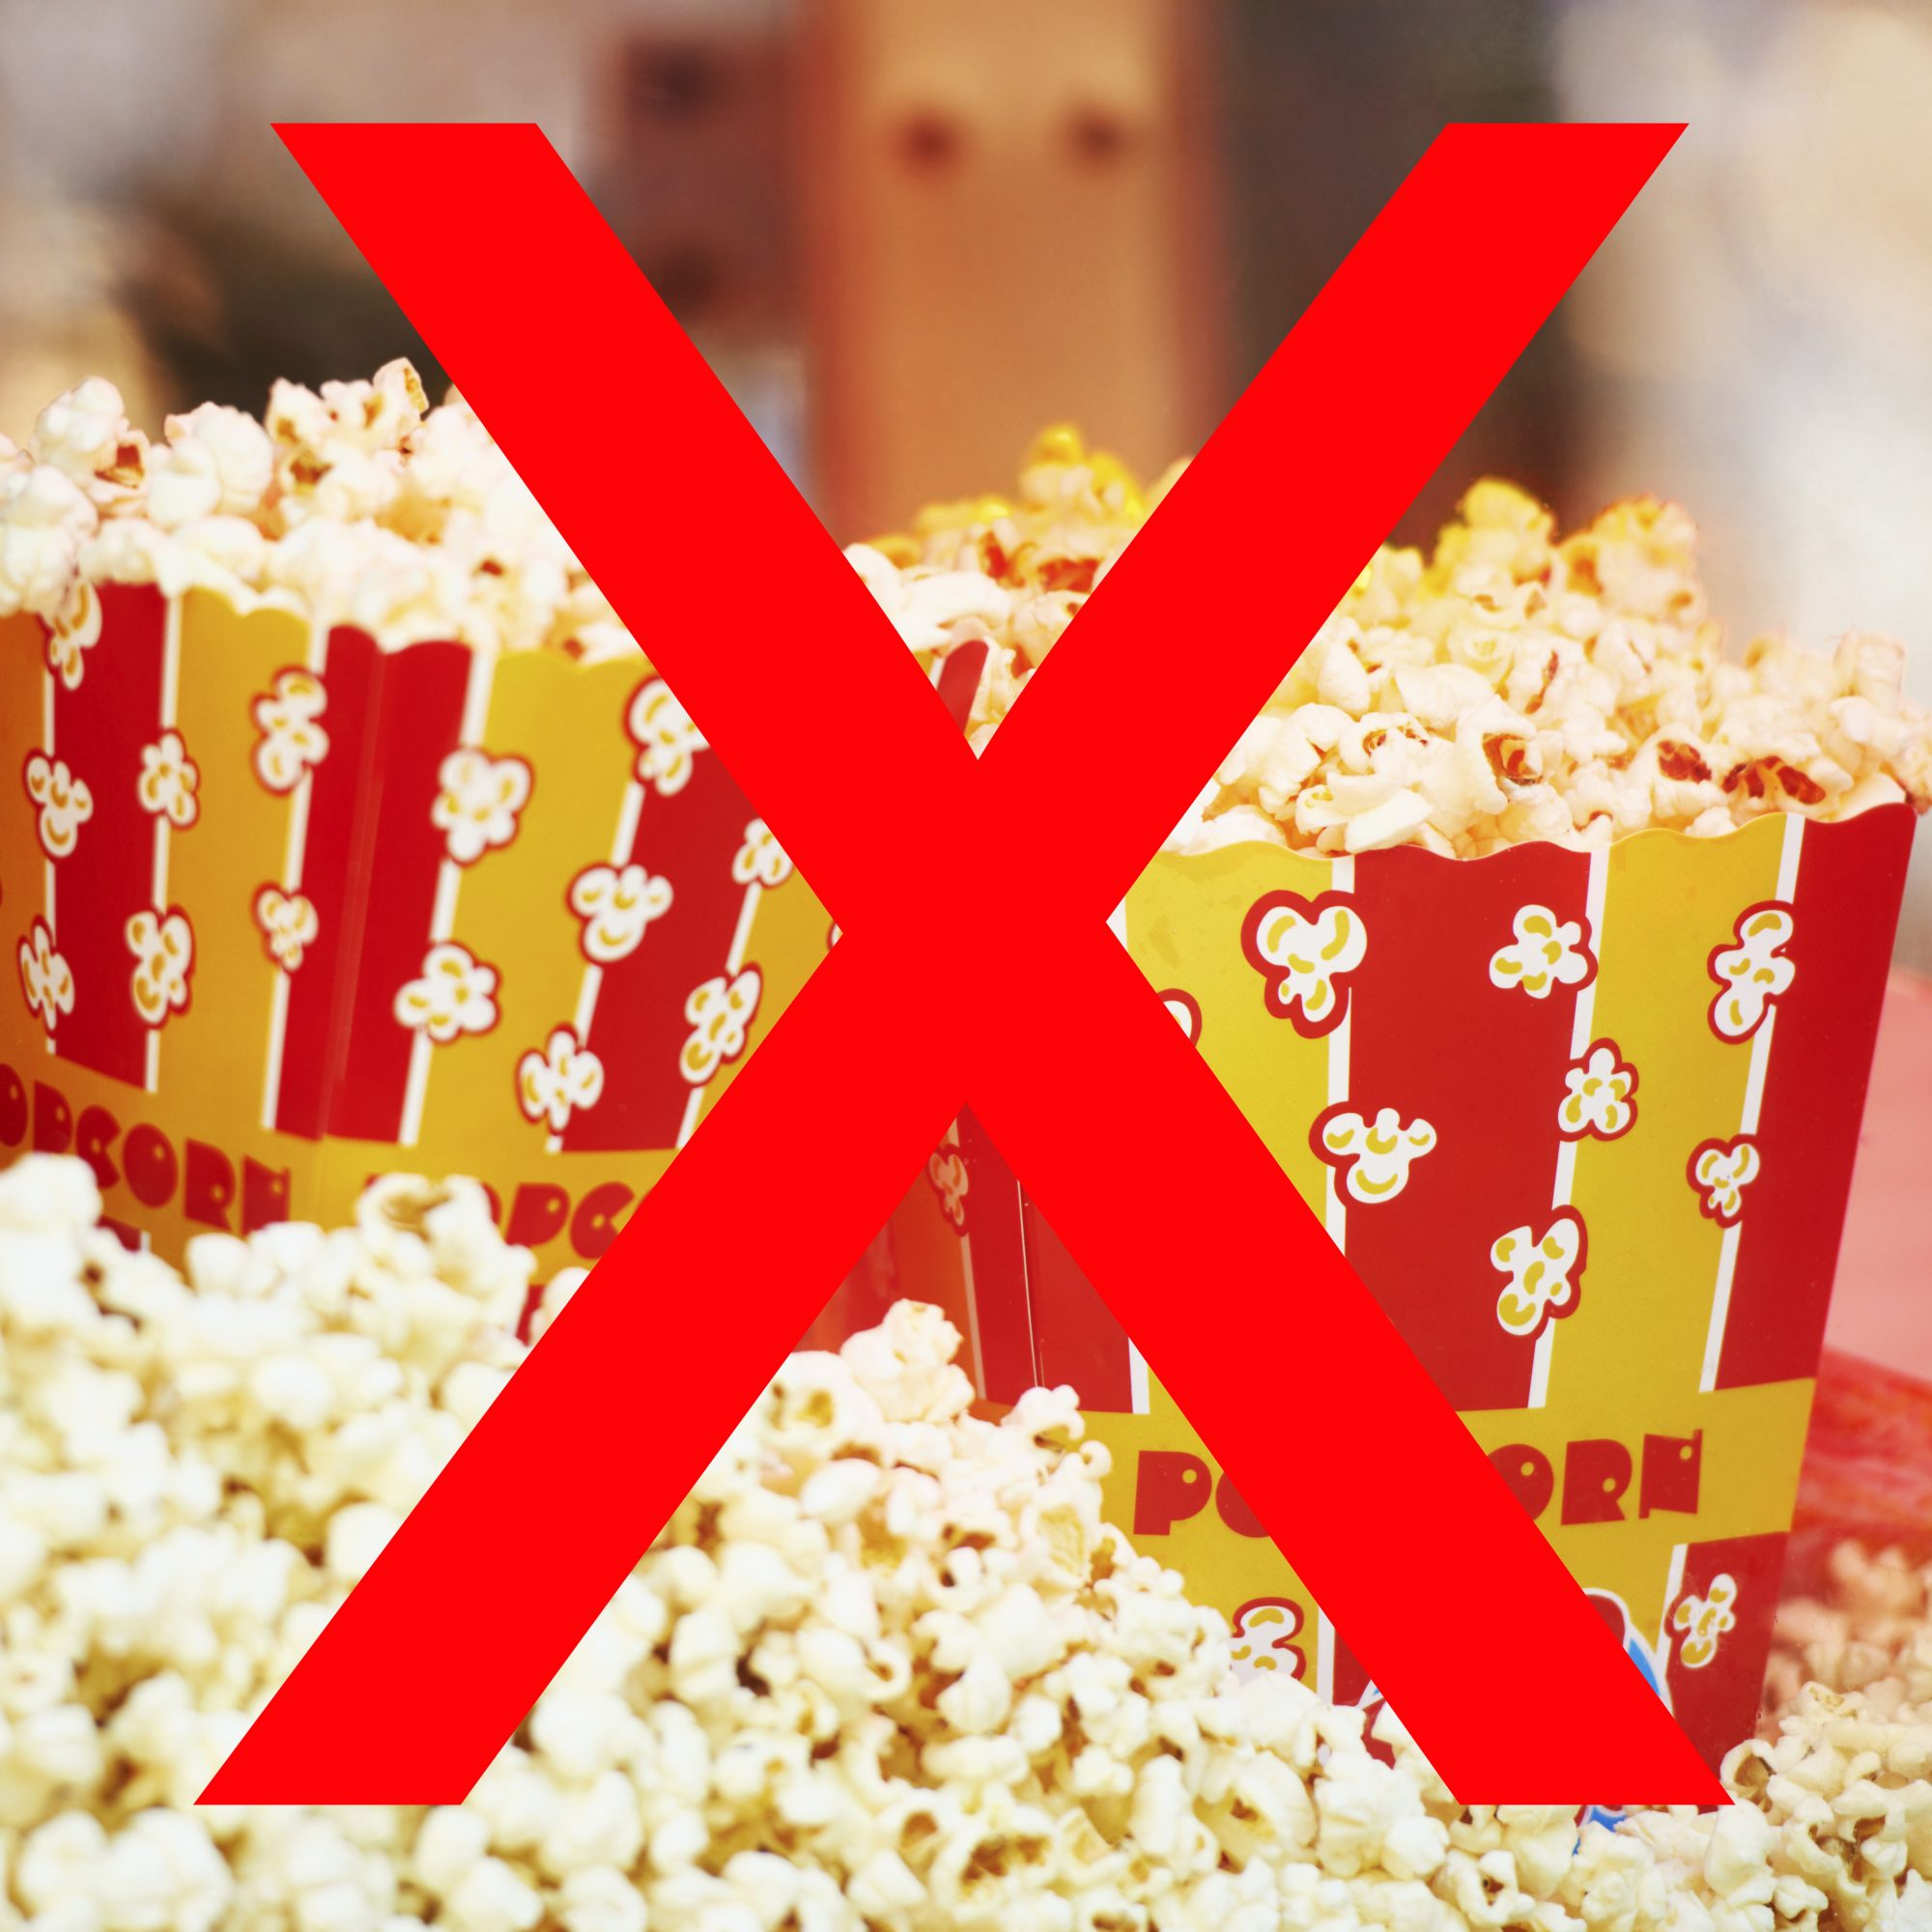 MAN WANTS TO BAN POPCORN AT MOVIES FWX